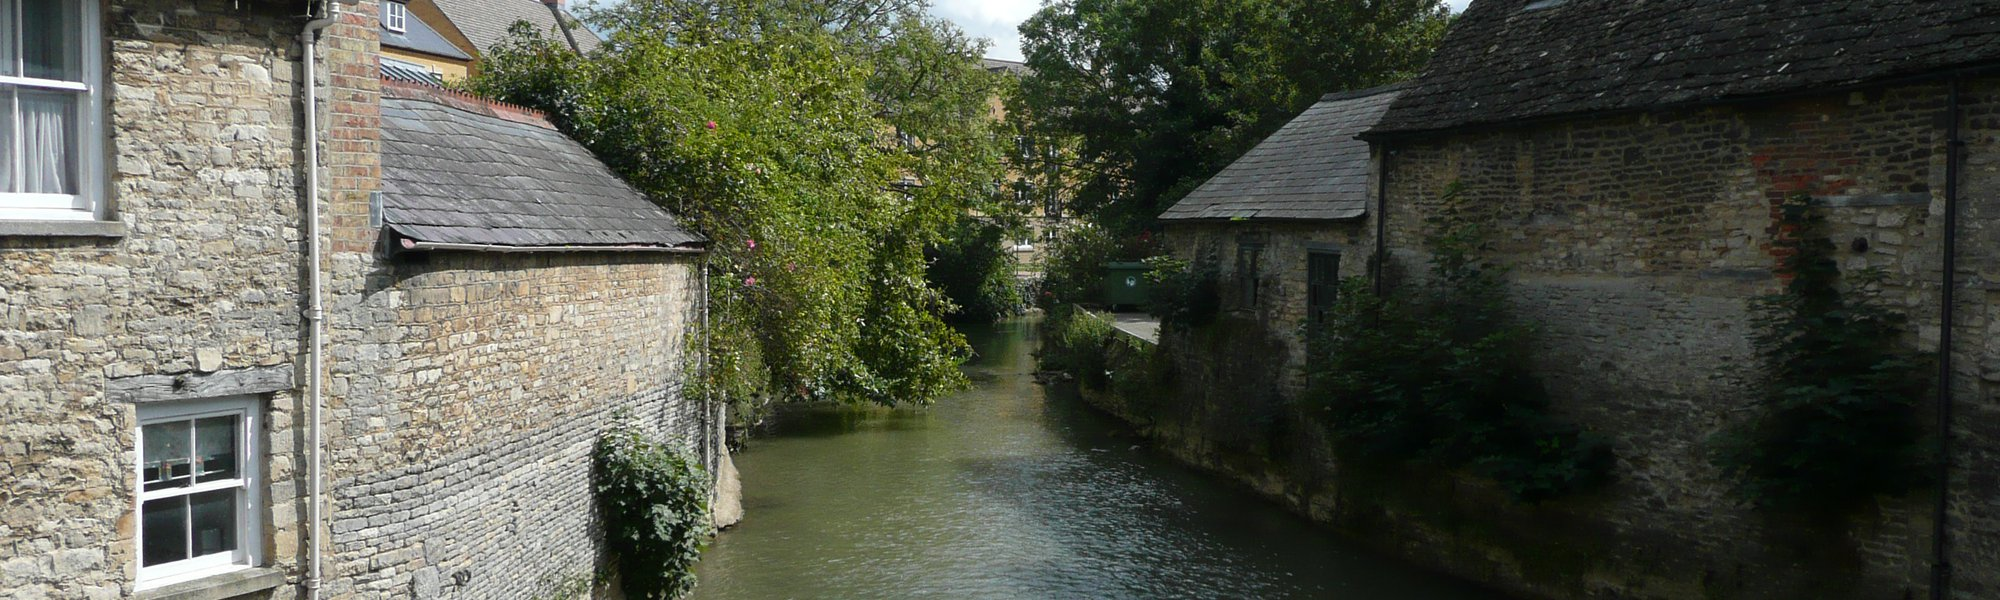 The River Windrush, looking South East from the bridge on Bridge Street.